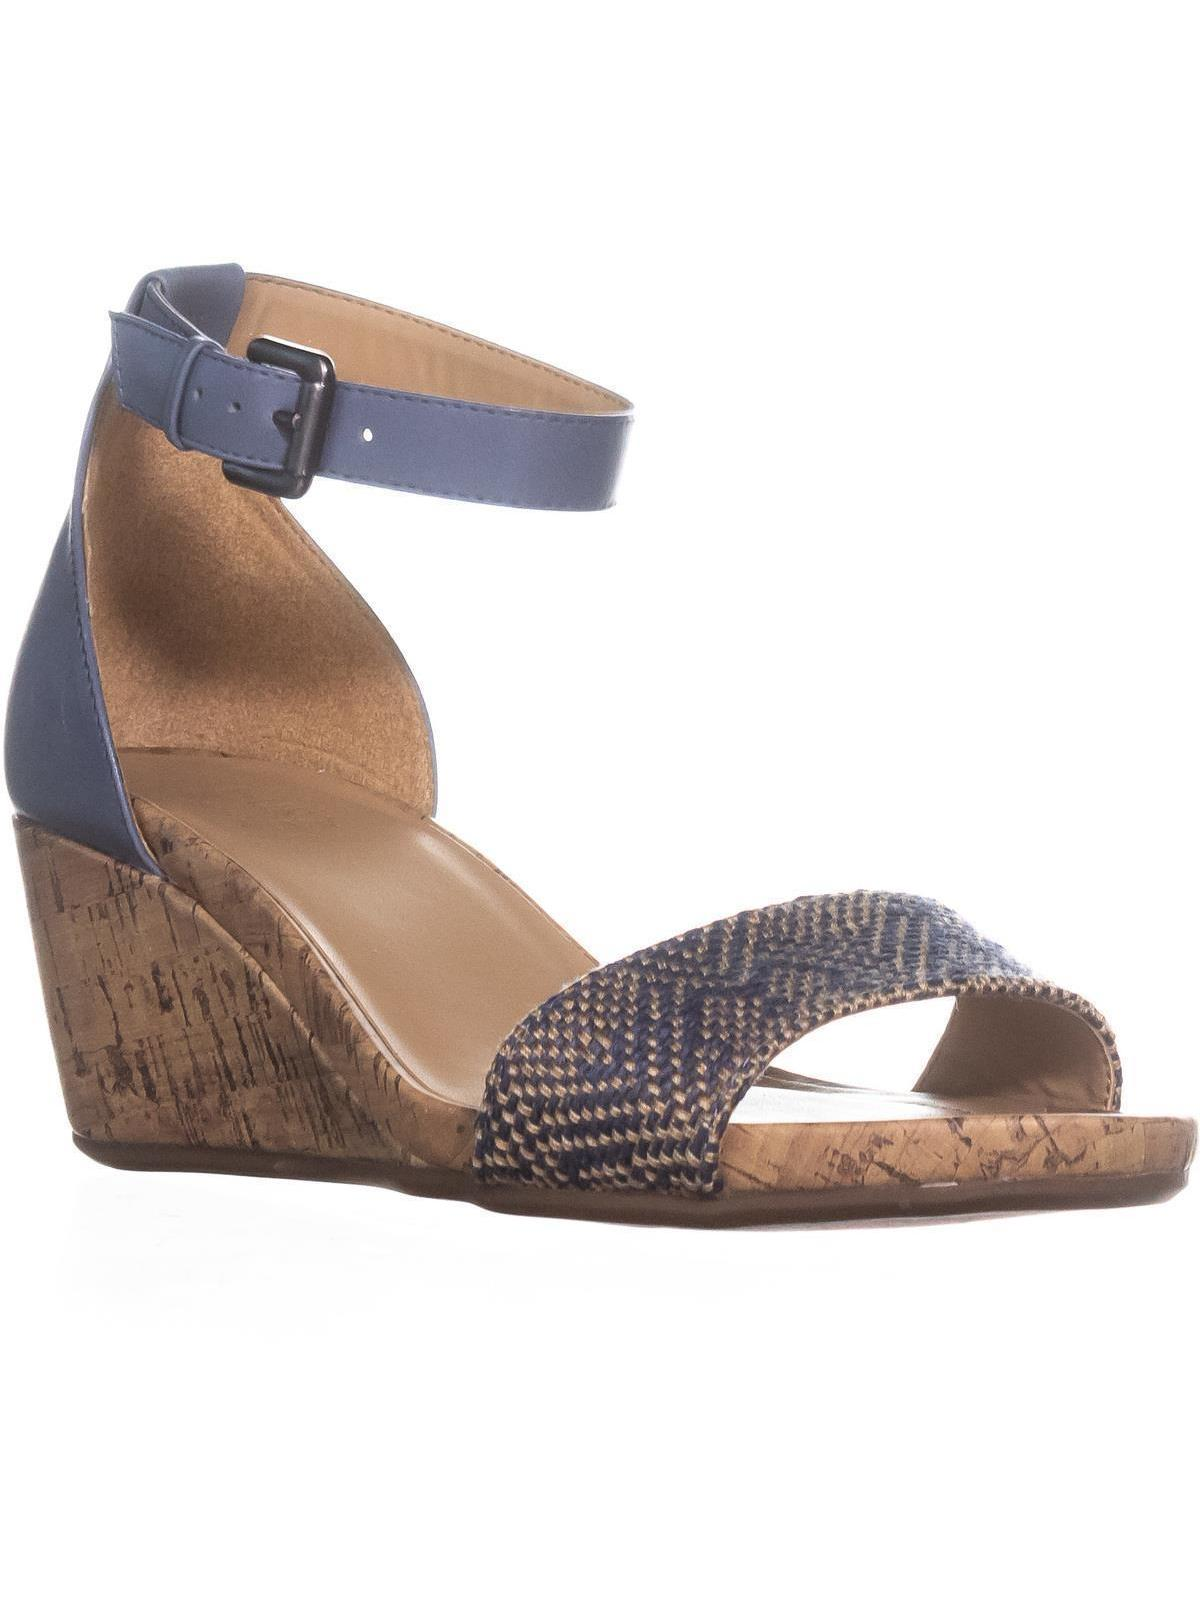 Womens Naturalizer Cami Ankle Strap Wedge Sandals, Blue Multi by Naturalizer